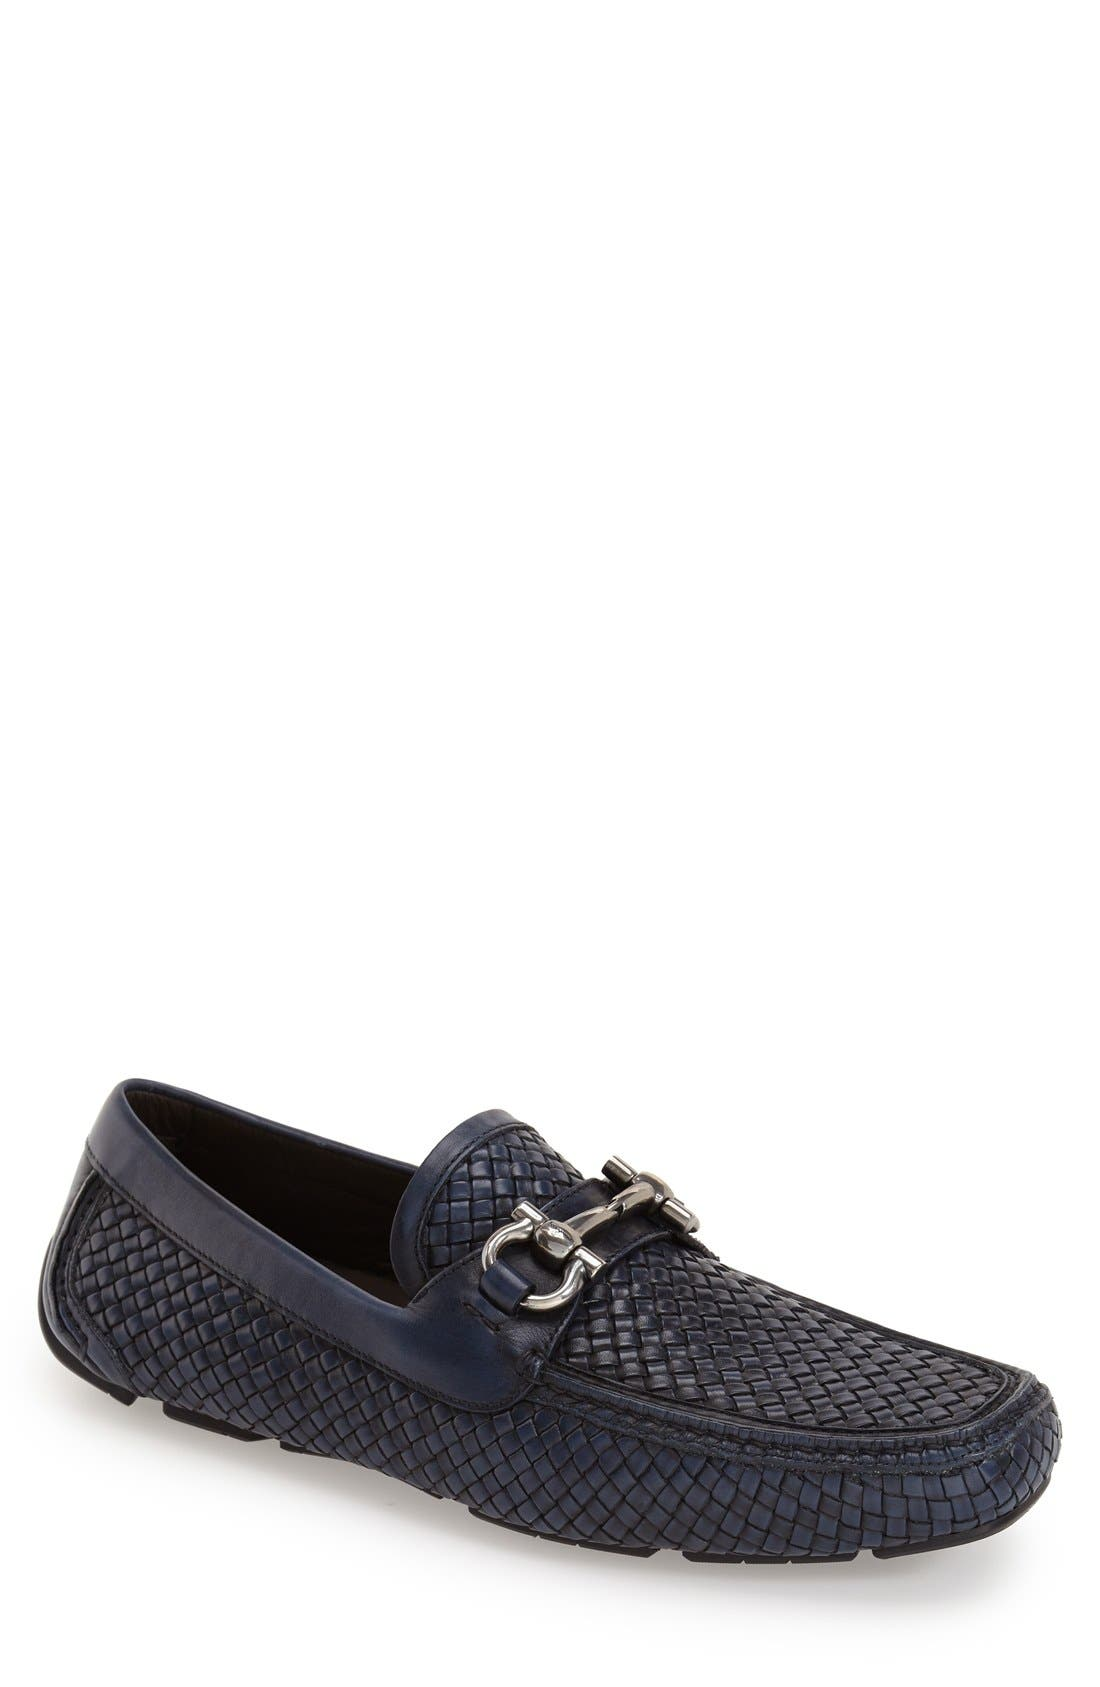 Main Image - Salvatore Ferragamo 'Parigi' Woven Bit Loafer (Men)